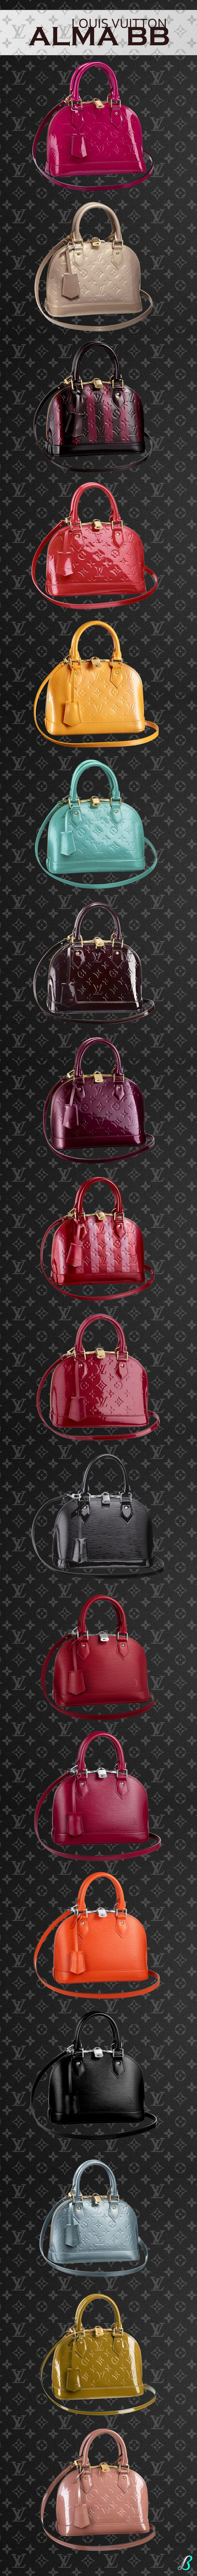 ~Louis Vuitton Alma BB Collection is a reinterpretation of one of LV's icons | House of Beccaria